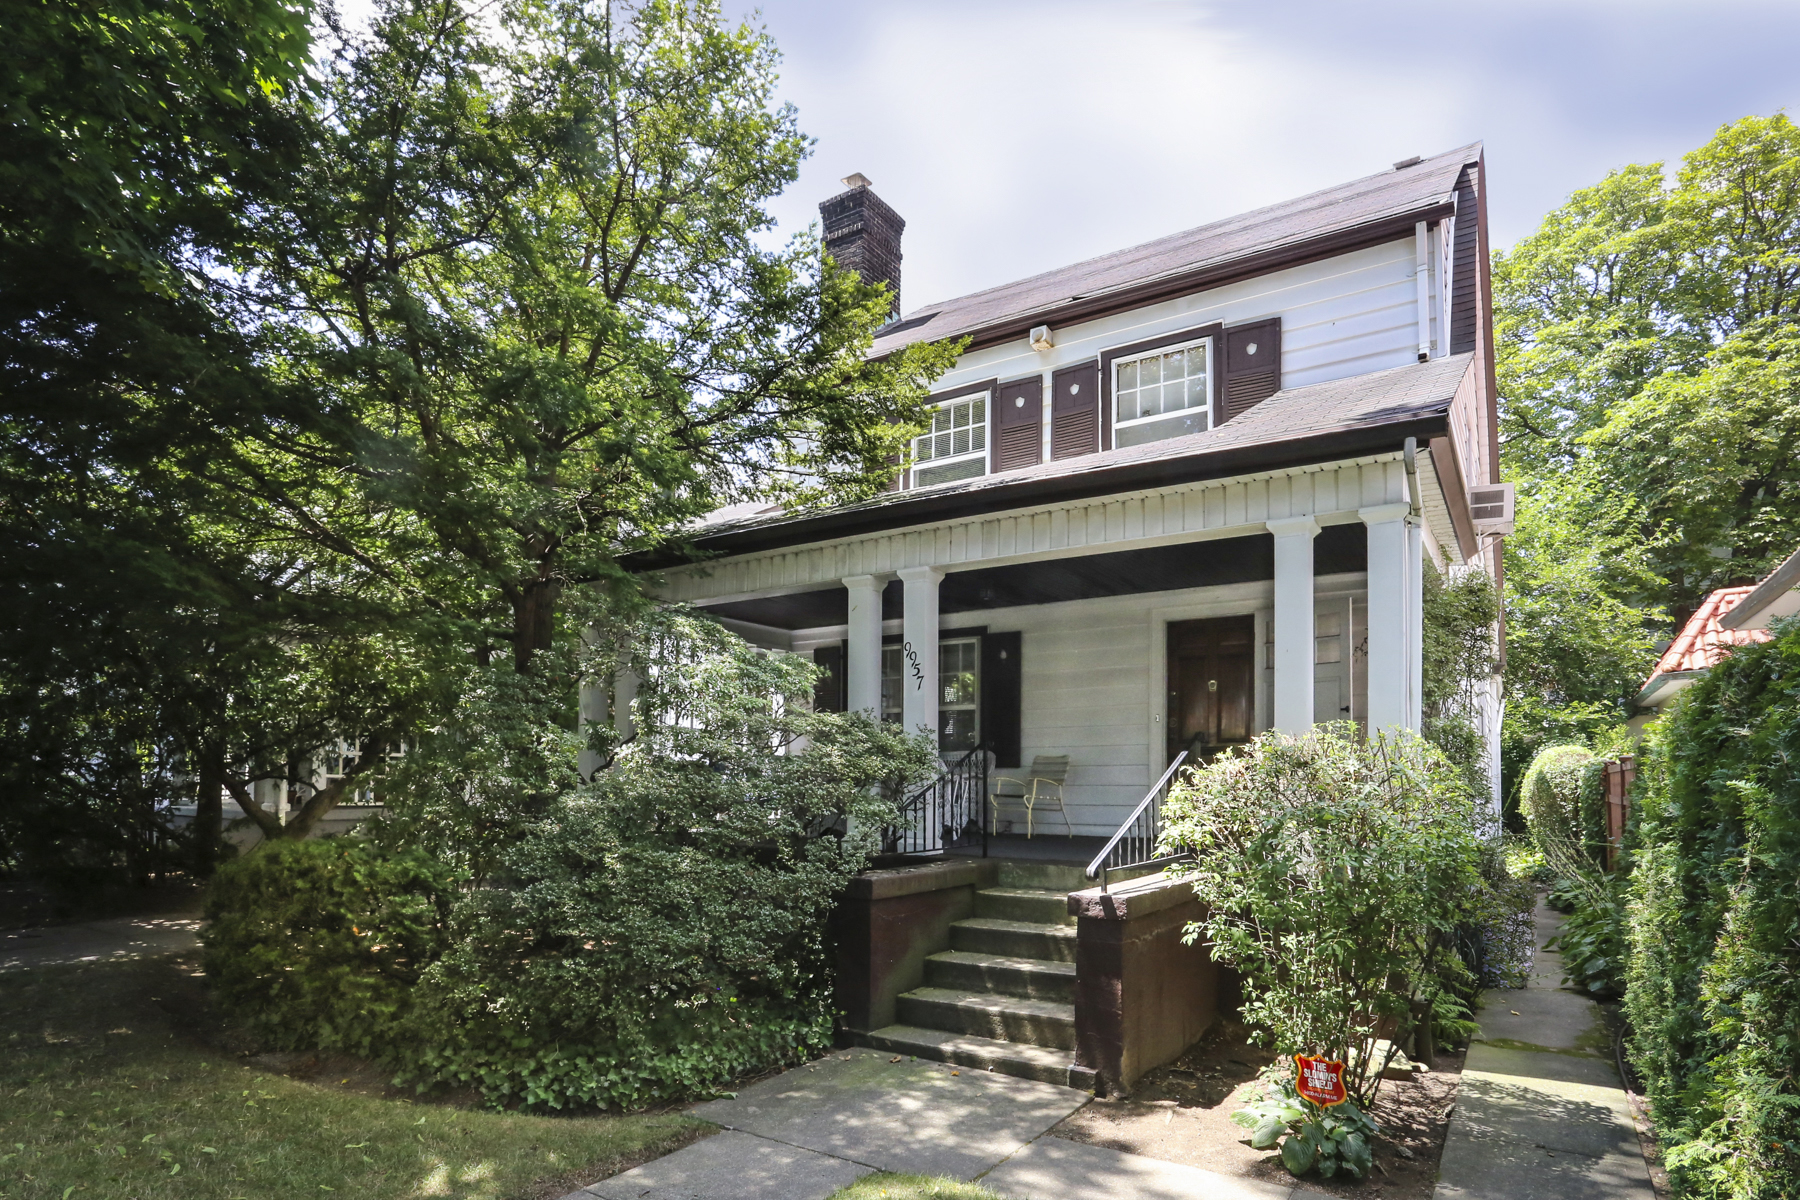 OPEN HOUSE SUNDAY SEPT 18TH 12 2 PM FOREST HILLS GARDENS QUEENS